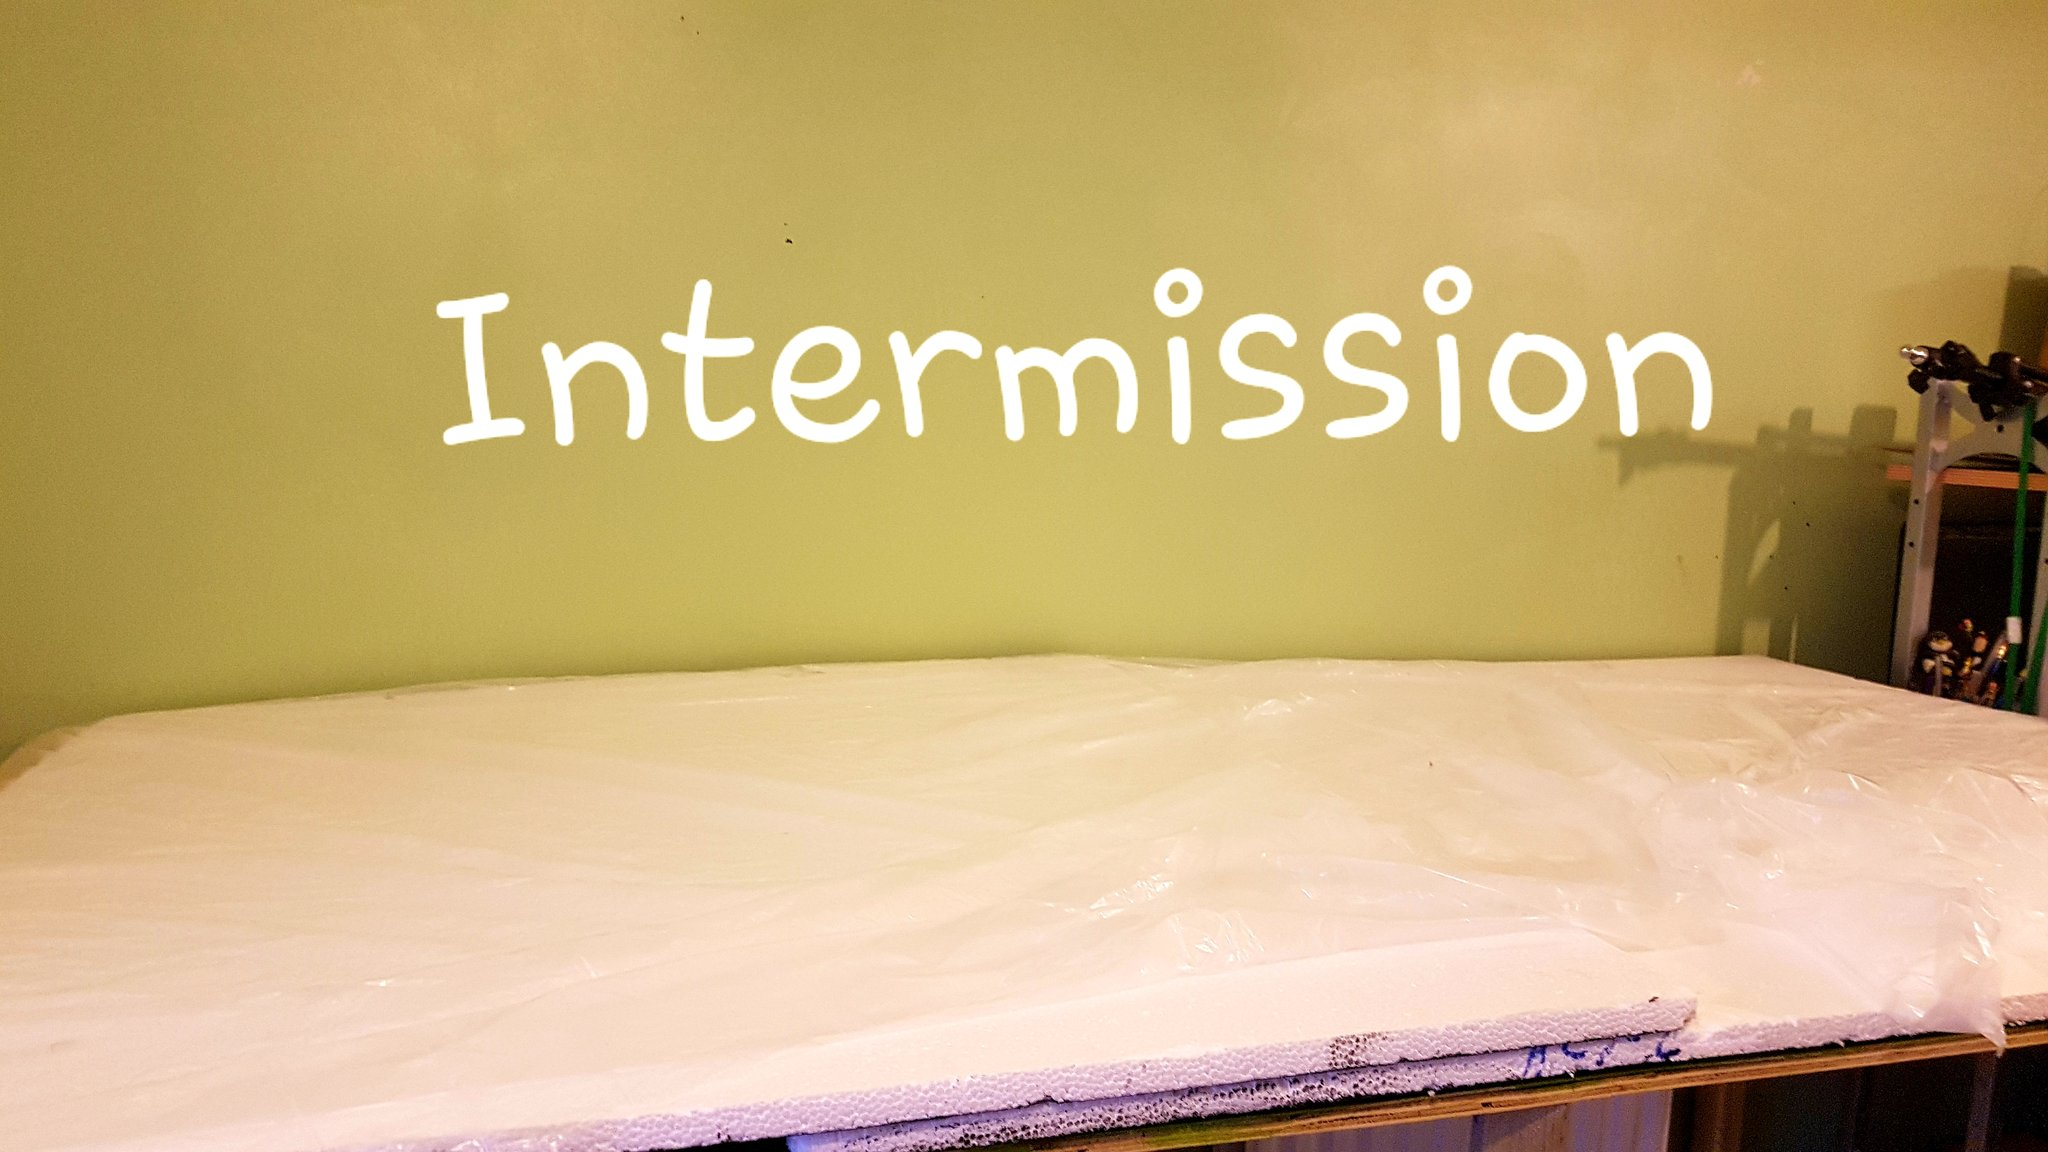 Intermission - Welcome to From the 3rd Story Productions Ltd </br> Film Production, Post-Production and Distribution